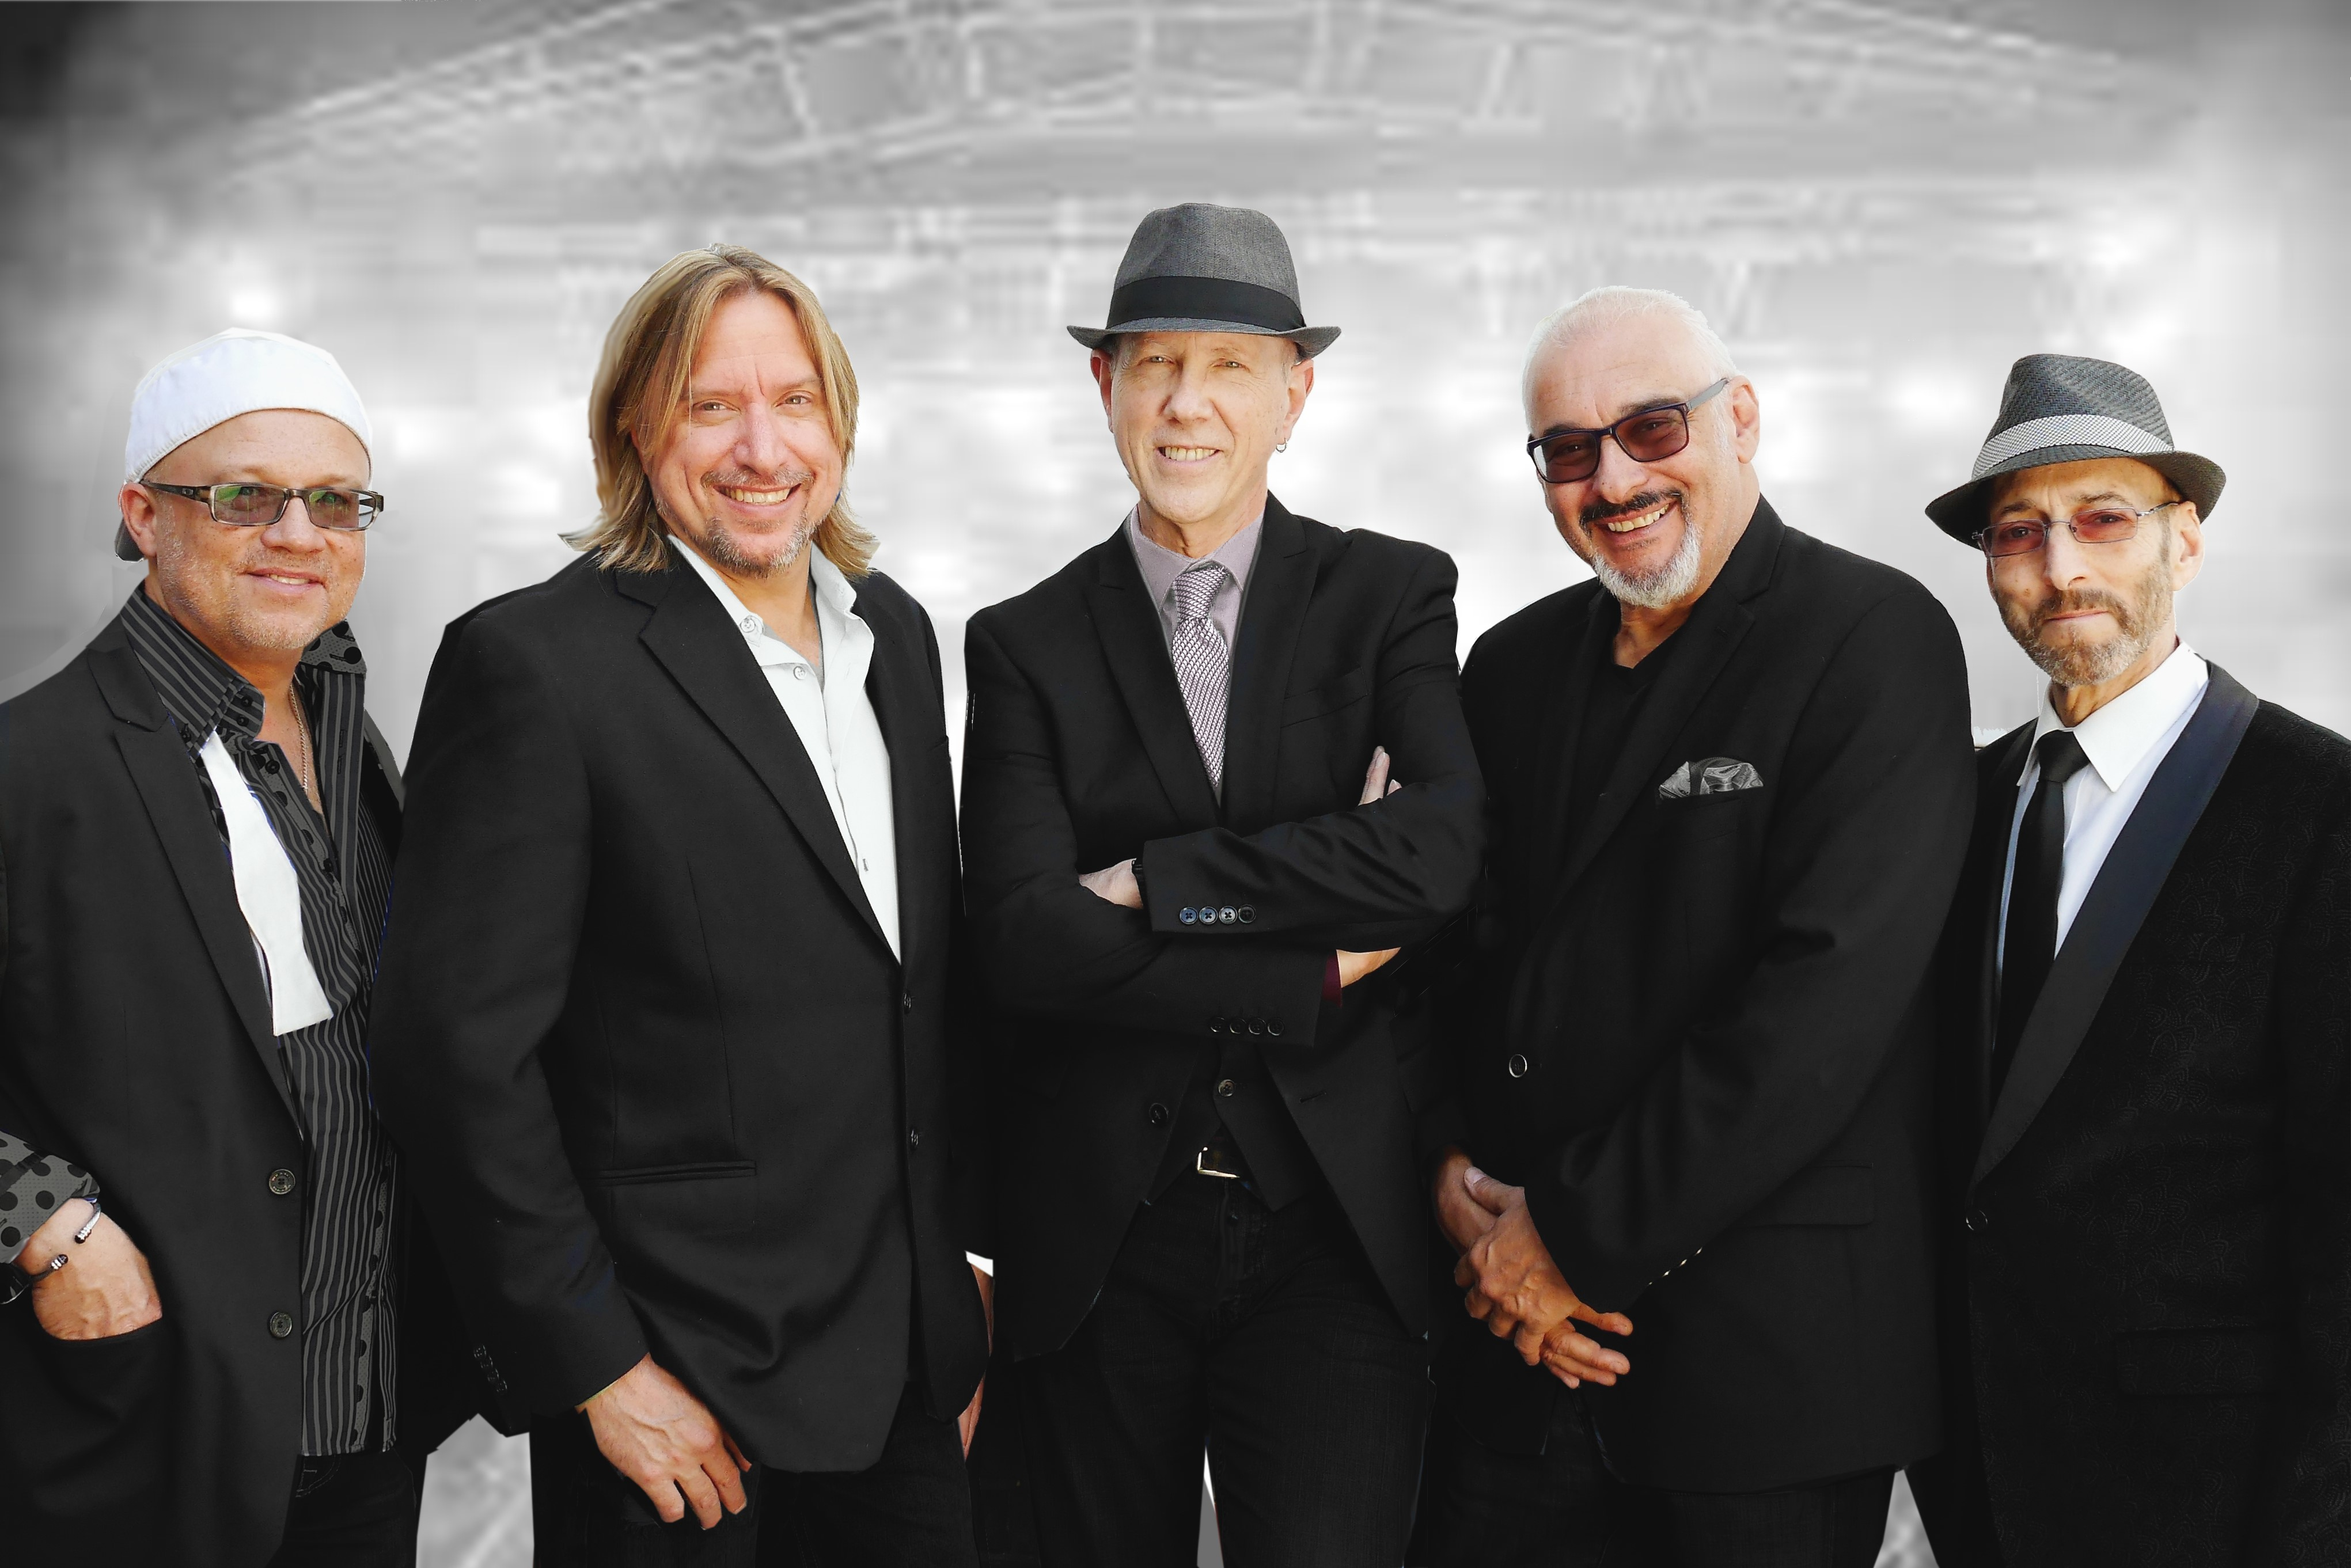 The Hit Men will be performing April 6 at 7:30 p.m. at the Cole Auditorium as part of the DeWitt Performing Arts Series. Tickets are on sale now.